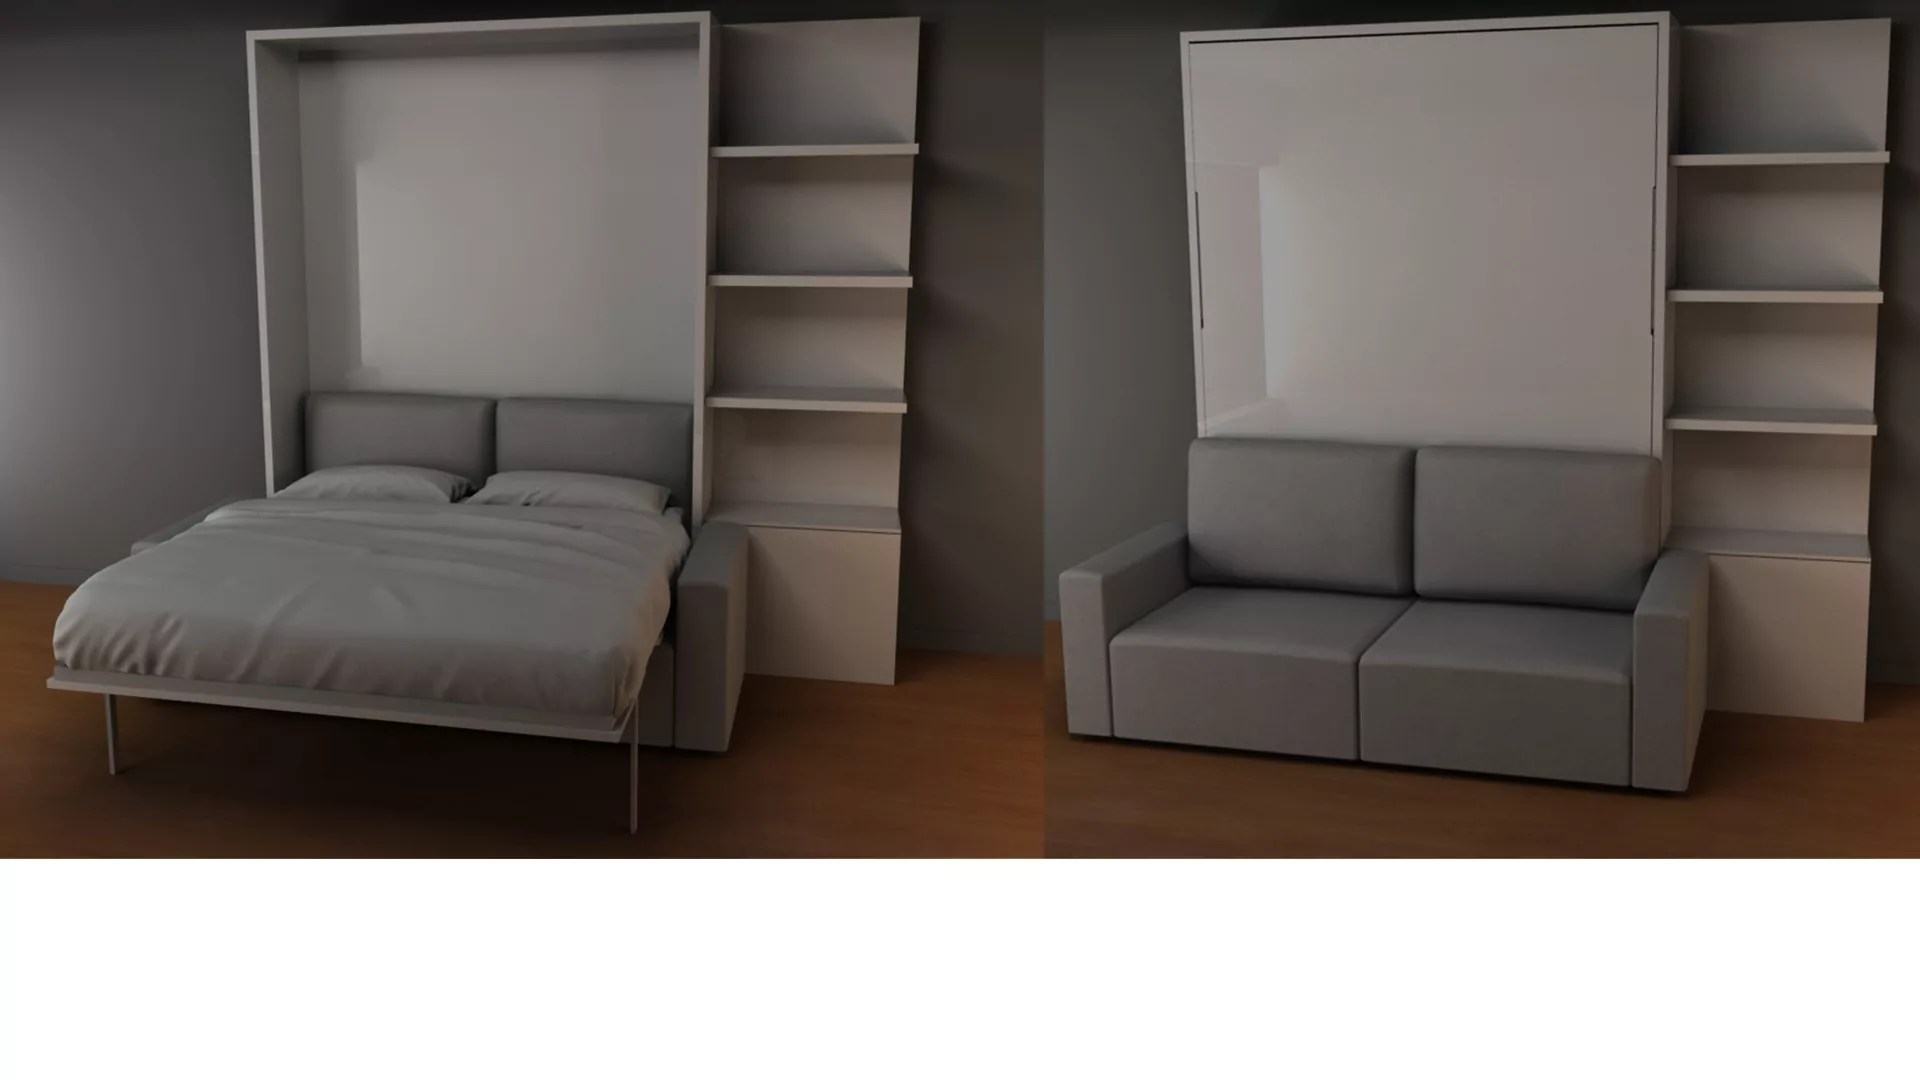 Sectional Bed Sofa Wall Bed Sofas Sofa Wall Beds For Sale Online Expand Furniture